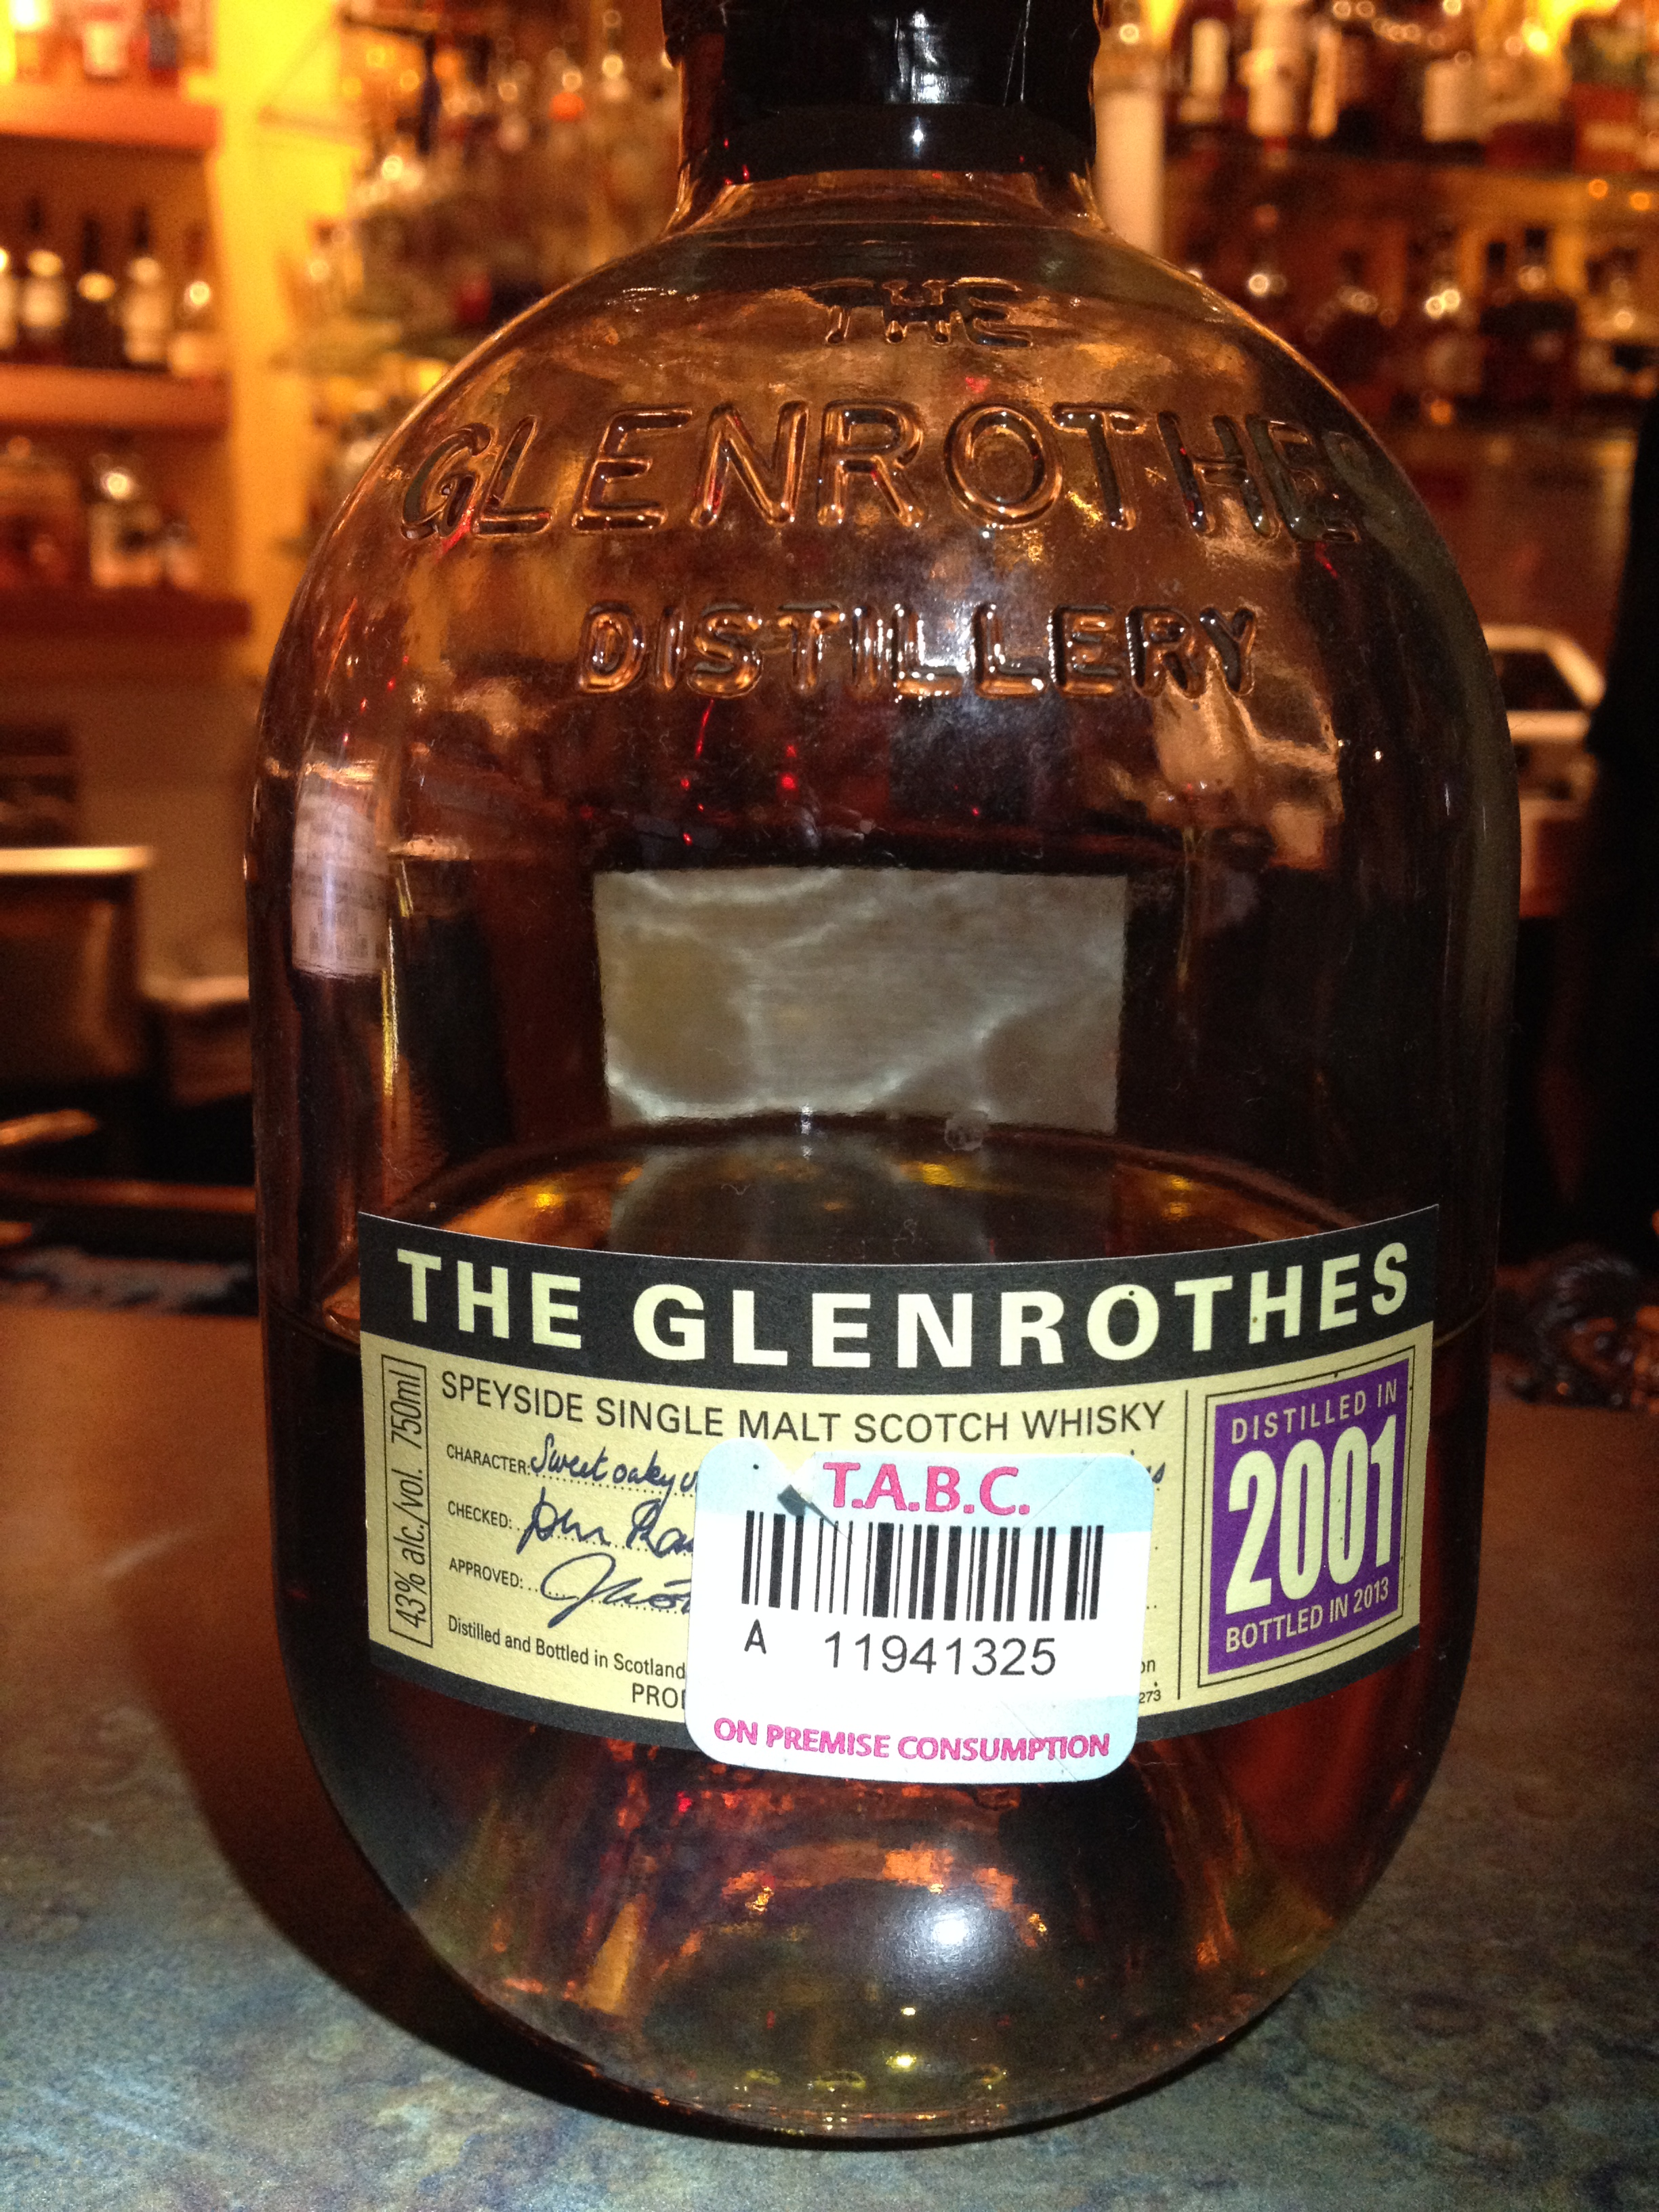 12 Year Old | 43% ABV - Distillery | Glenrothes